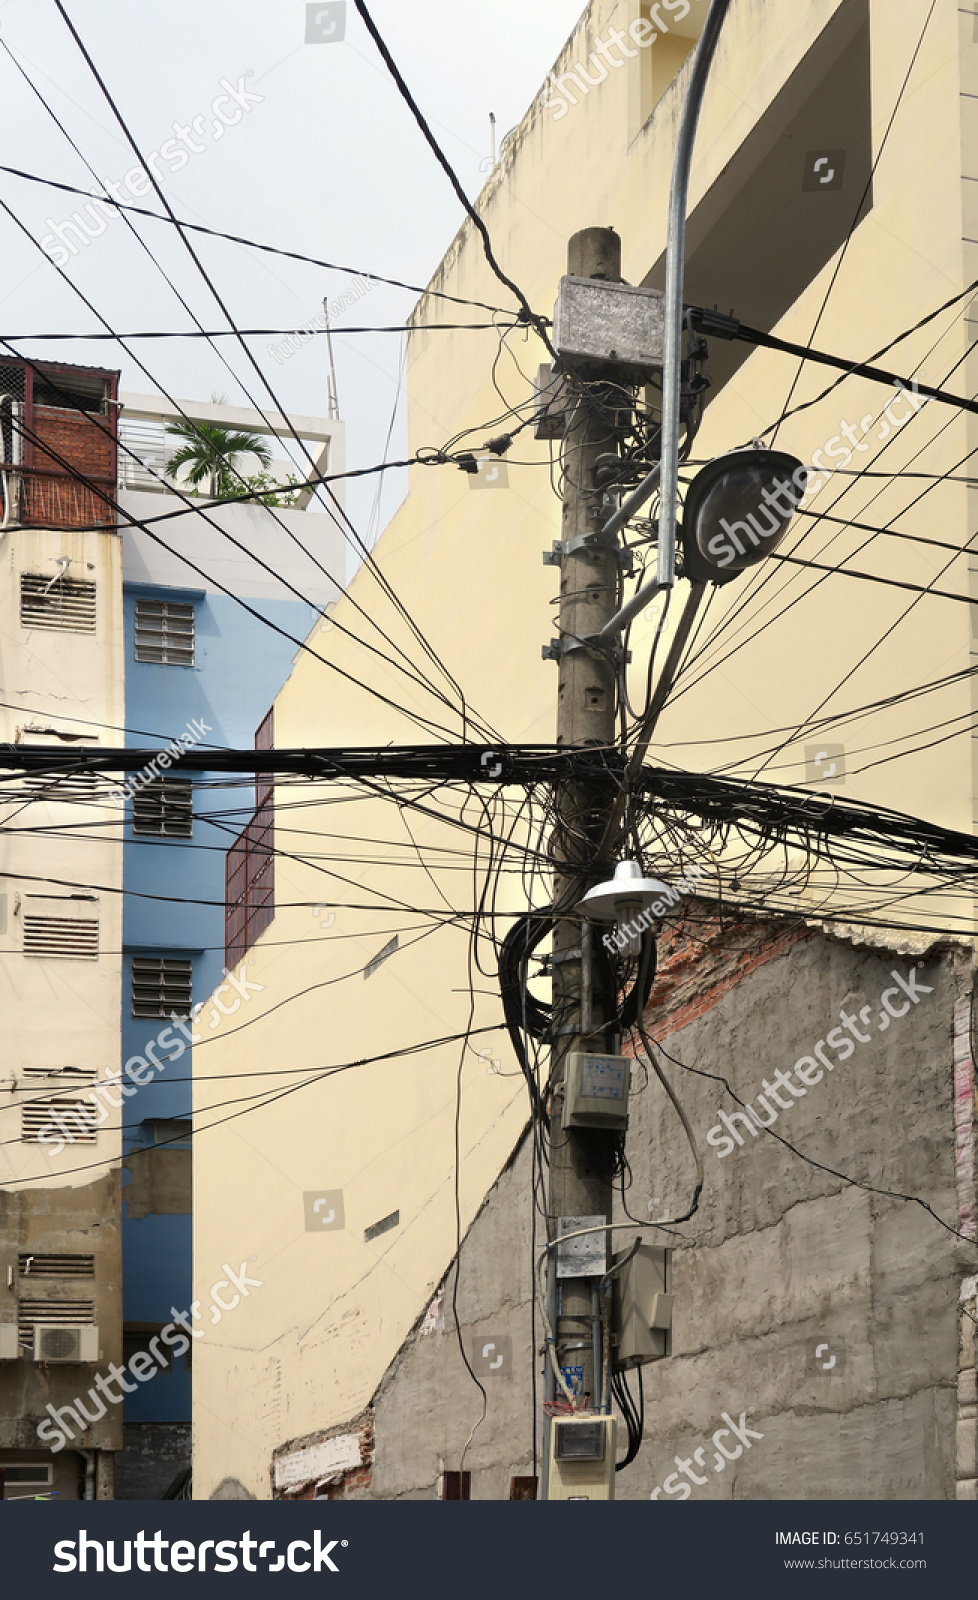 Residential Power Supply Tangled Wires On Stock Photo Edit Now Together With Telephone Wiring And Cable Home A Pole For Supplying Neighboring Apartment Buildings